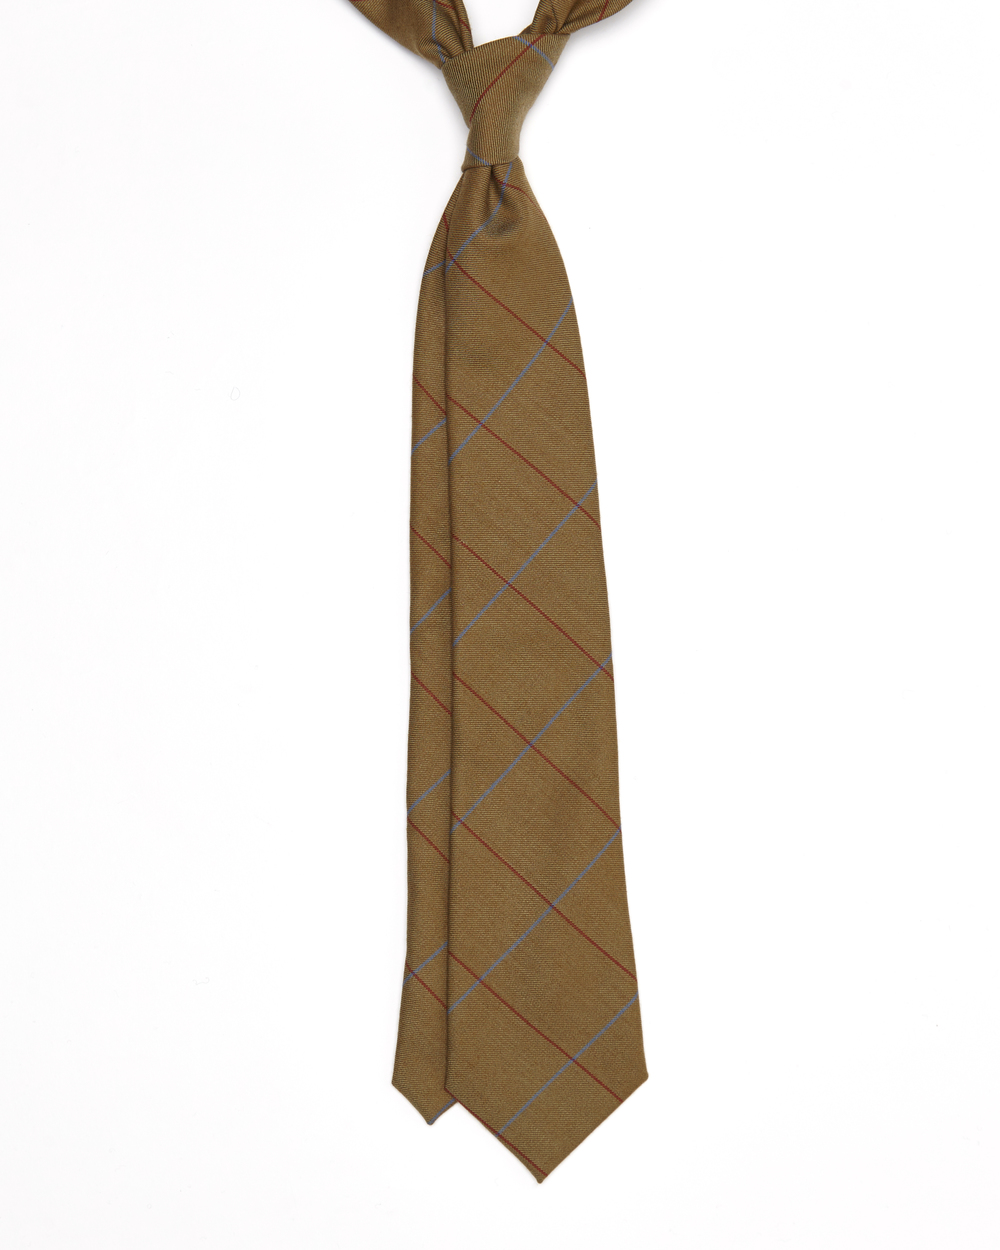 Taylor Tie | 100% Twill Wool Solway Window Pane | Colour: Light Brown, Red & Blue